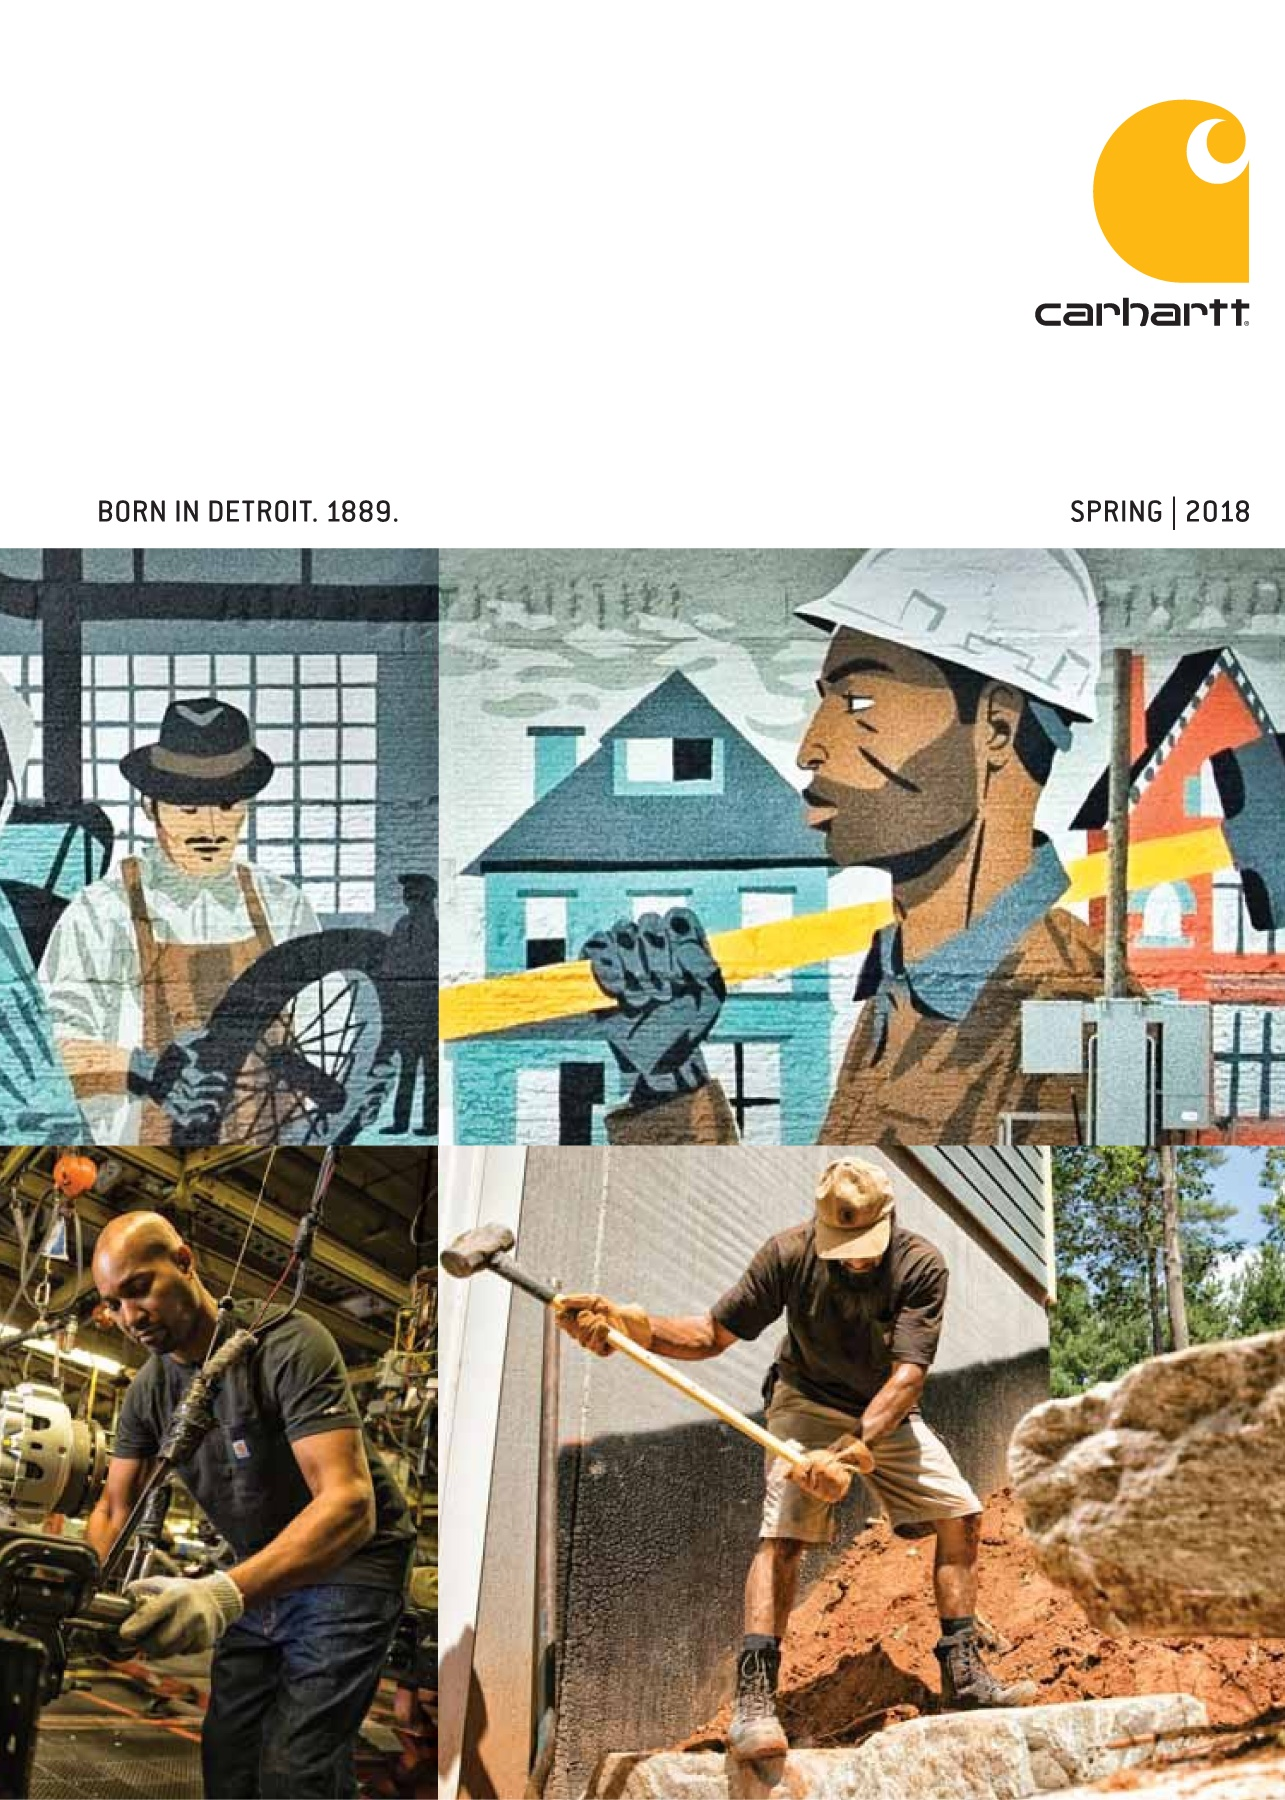 71892996 Carhartt 2018 Catalog Pages 51 - 100 - Text Version | AnyFlip